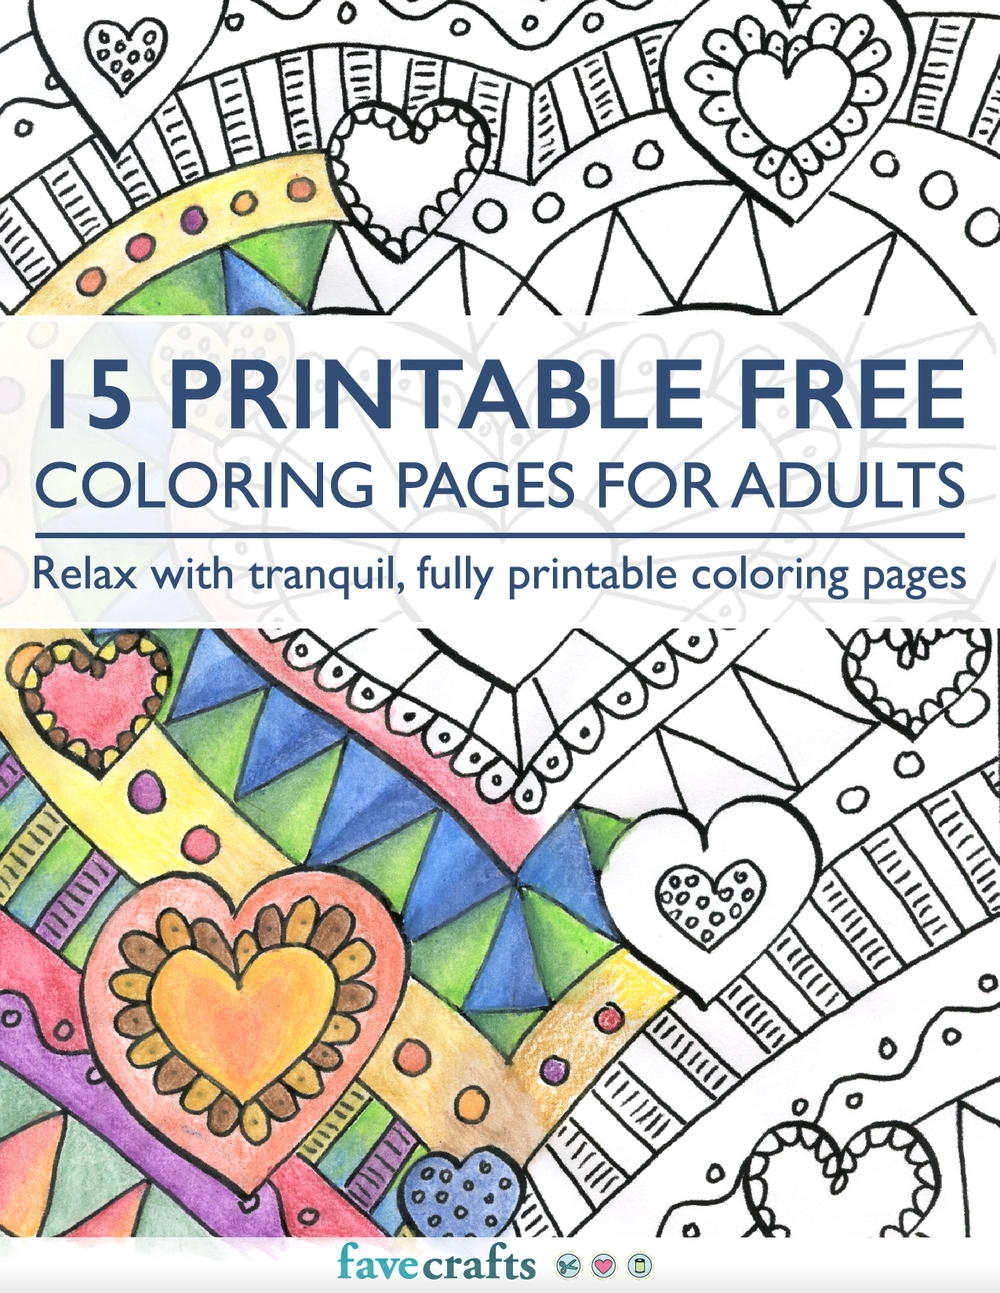 free printable coloring book pages for adults - Printable Free Coloring Pages for Adults free eBook